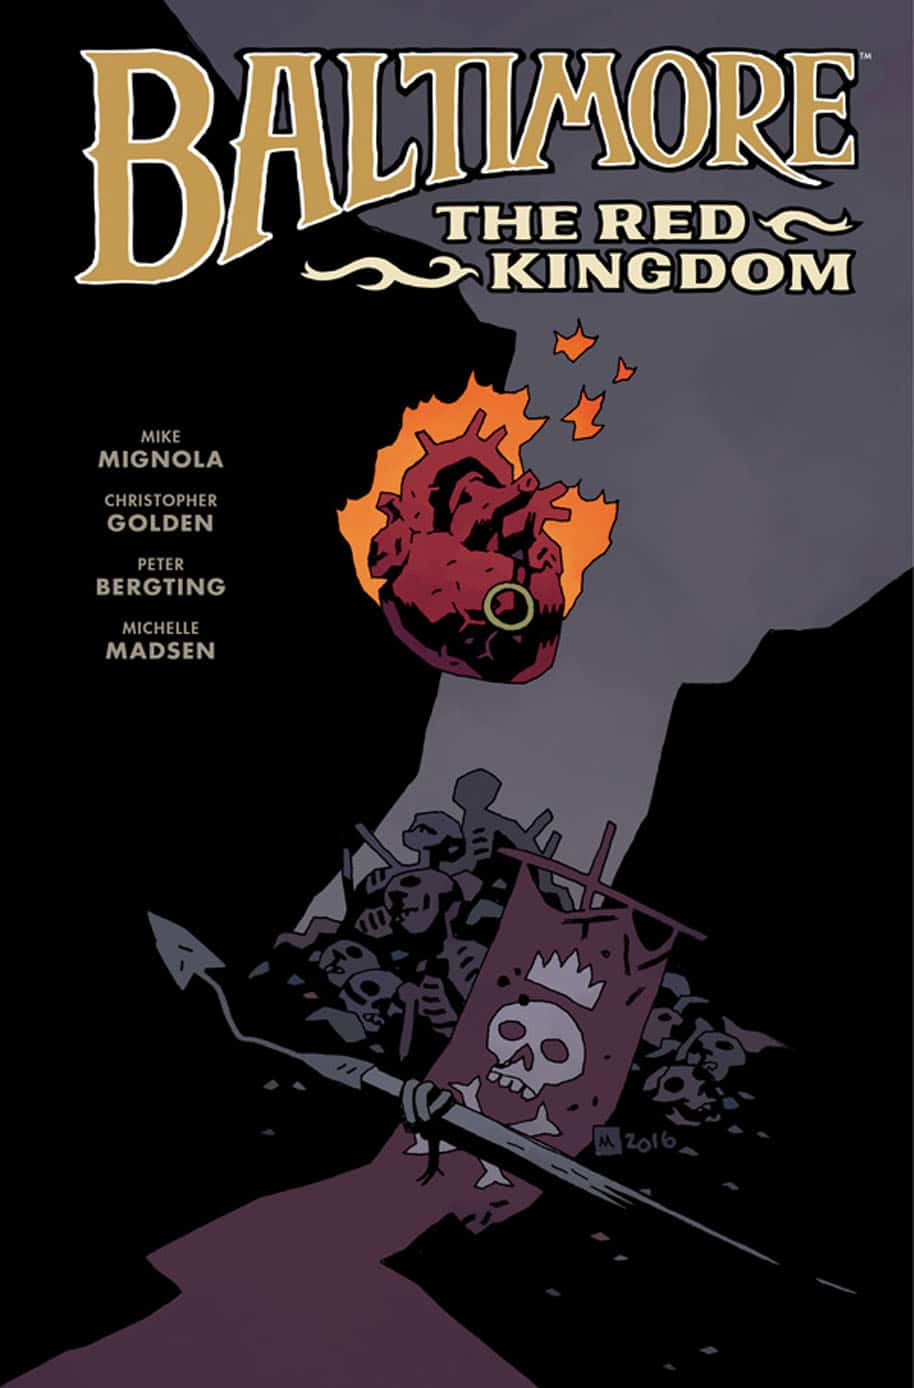 'Baltimore: The Red Kingdom' twists the knife